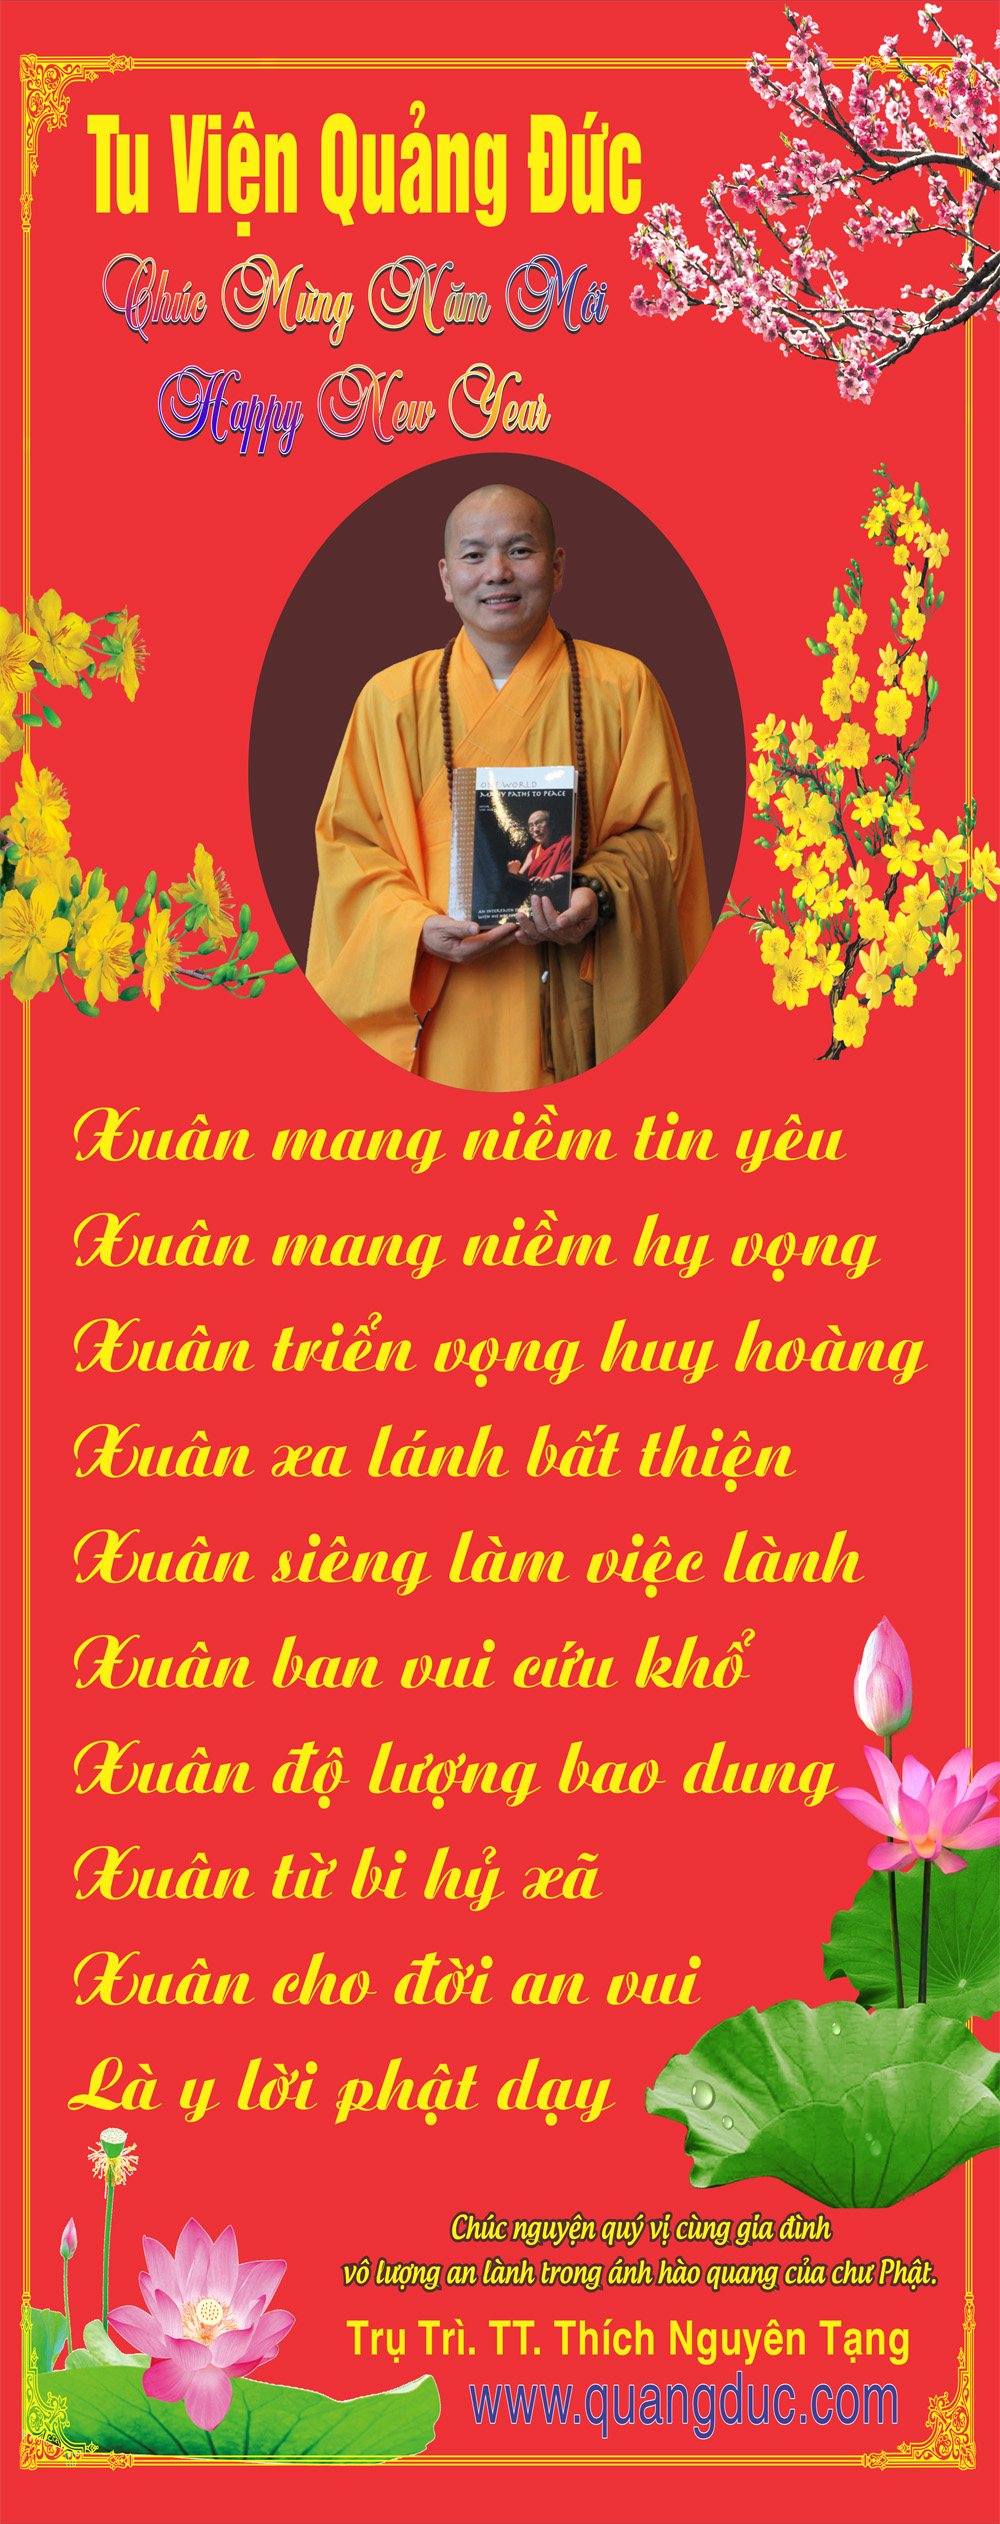 Xuan canh ty-2020-canh ty-tt nguyen tang